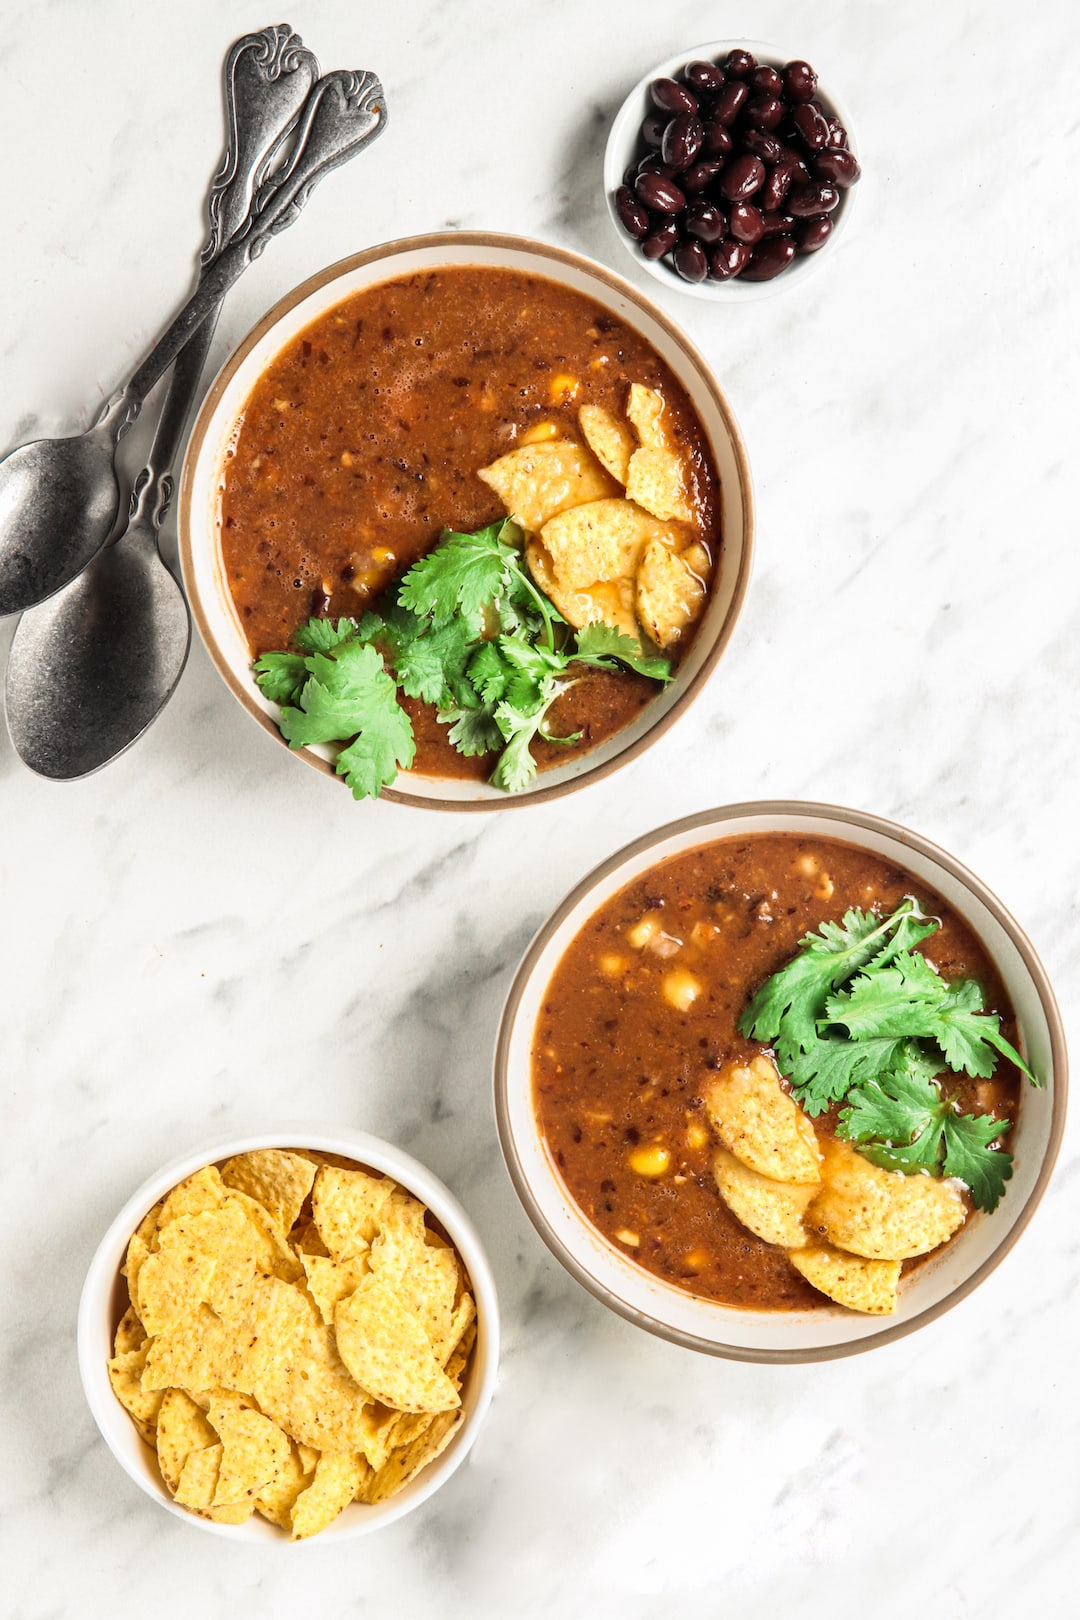 Two bowls of Easy Blender Vitamix Tortilla Soup with corn tortilla chips and cilantro garnish